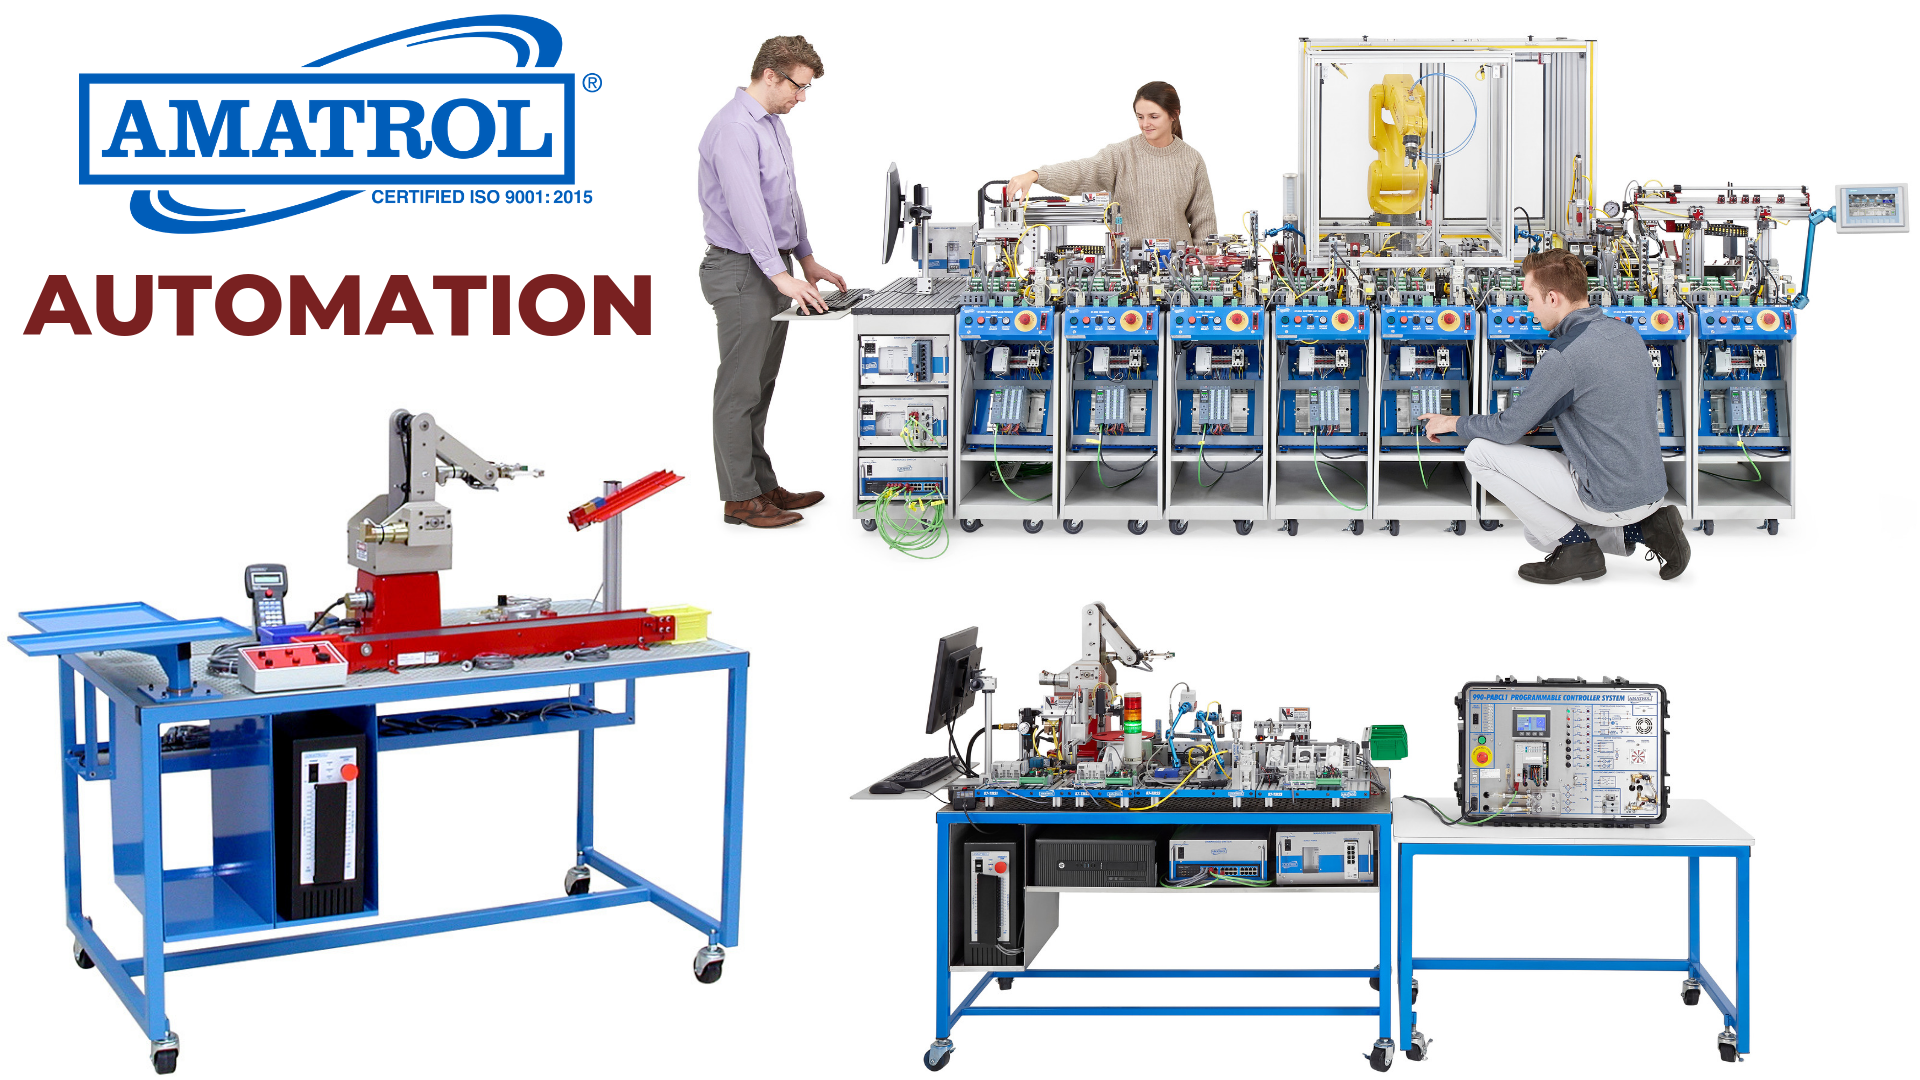 Amatrol Automation Training Systems